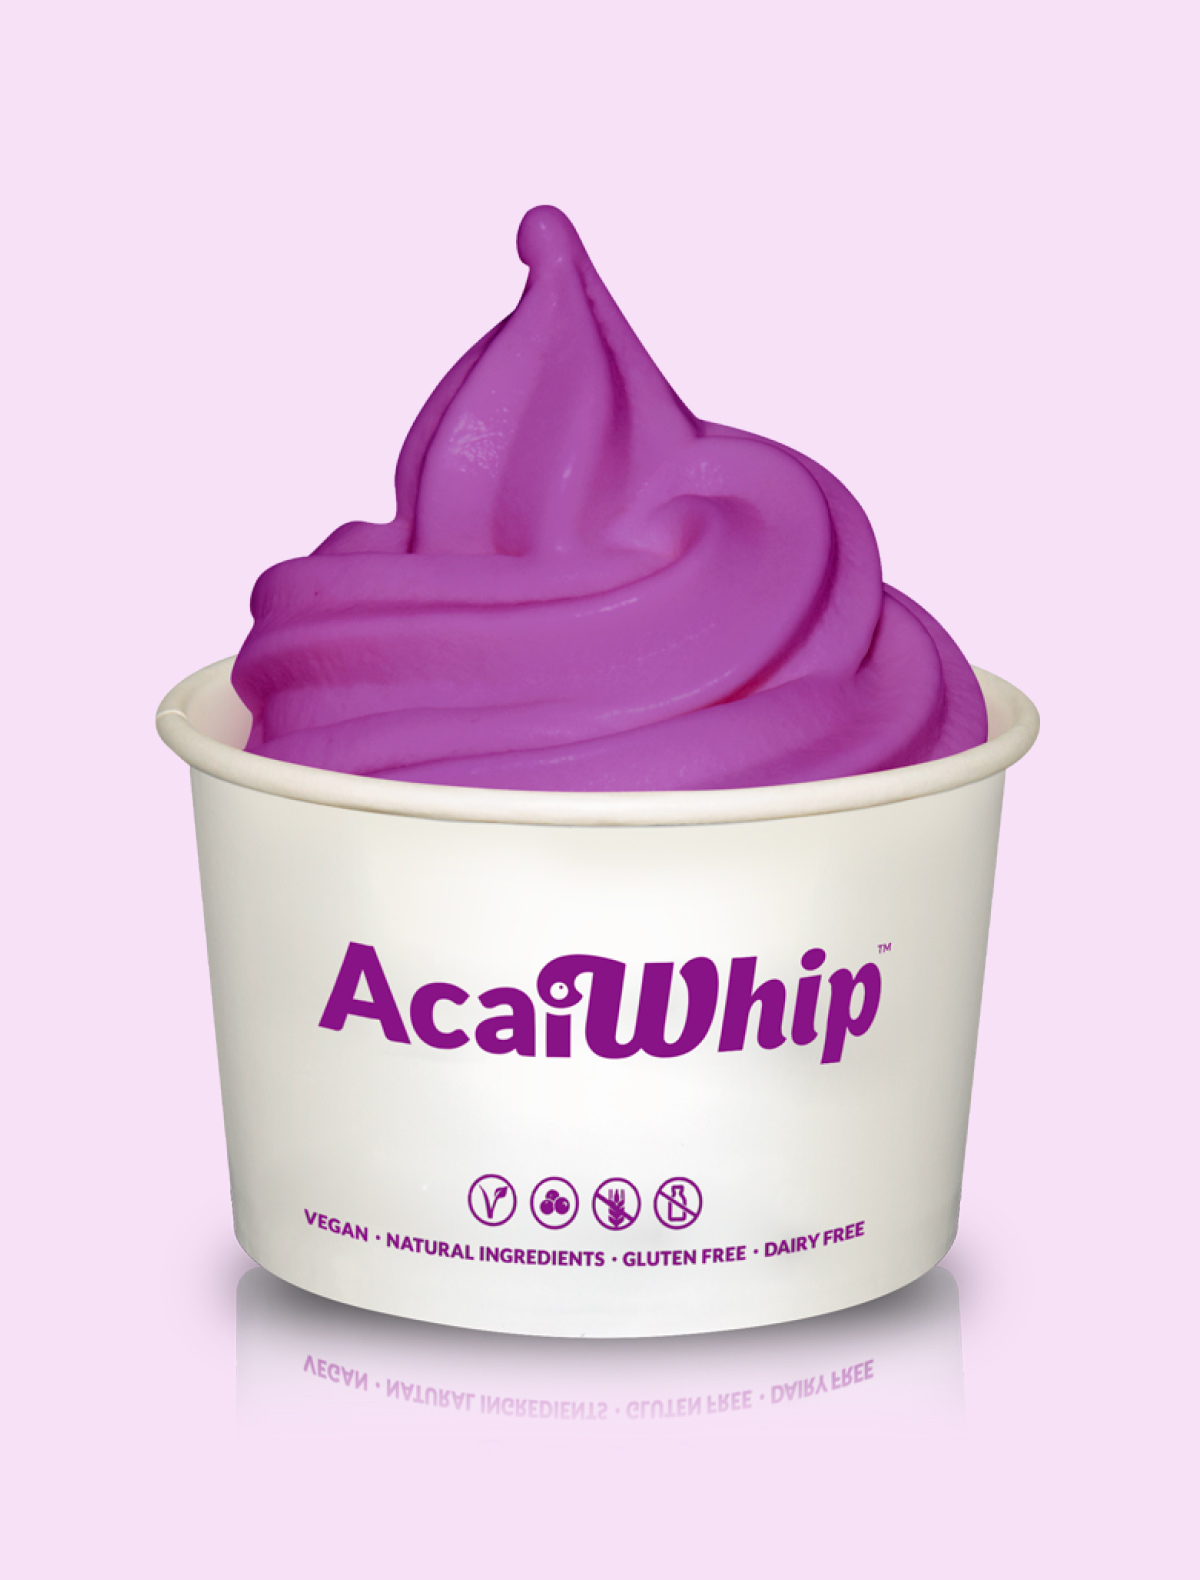 An image of Acaiwhip